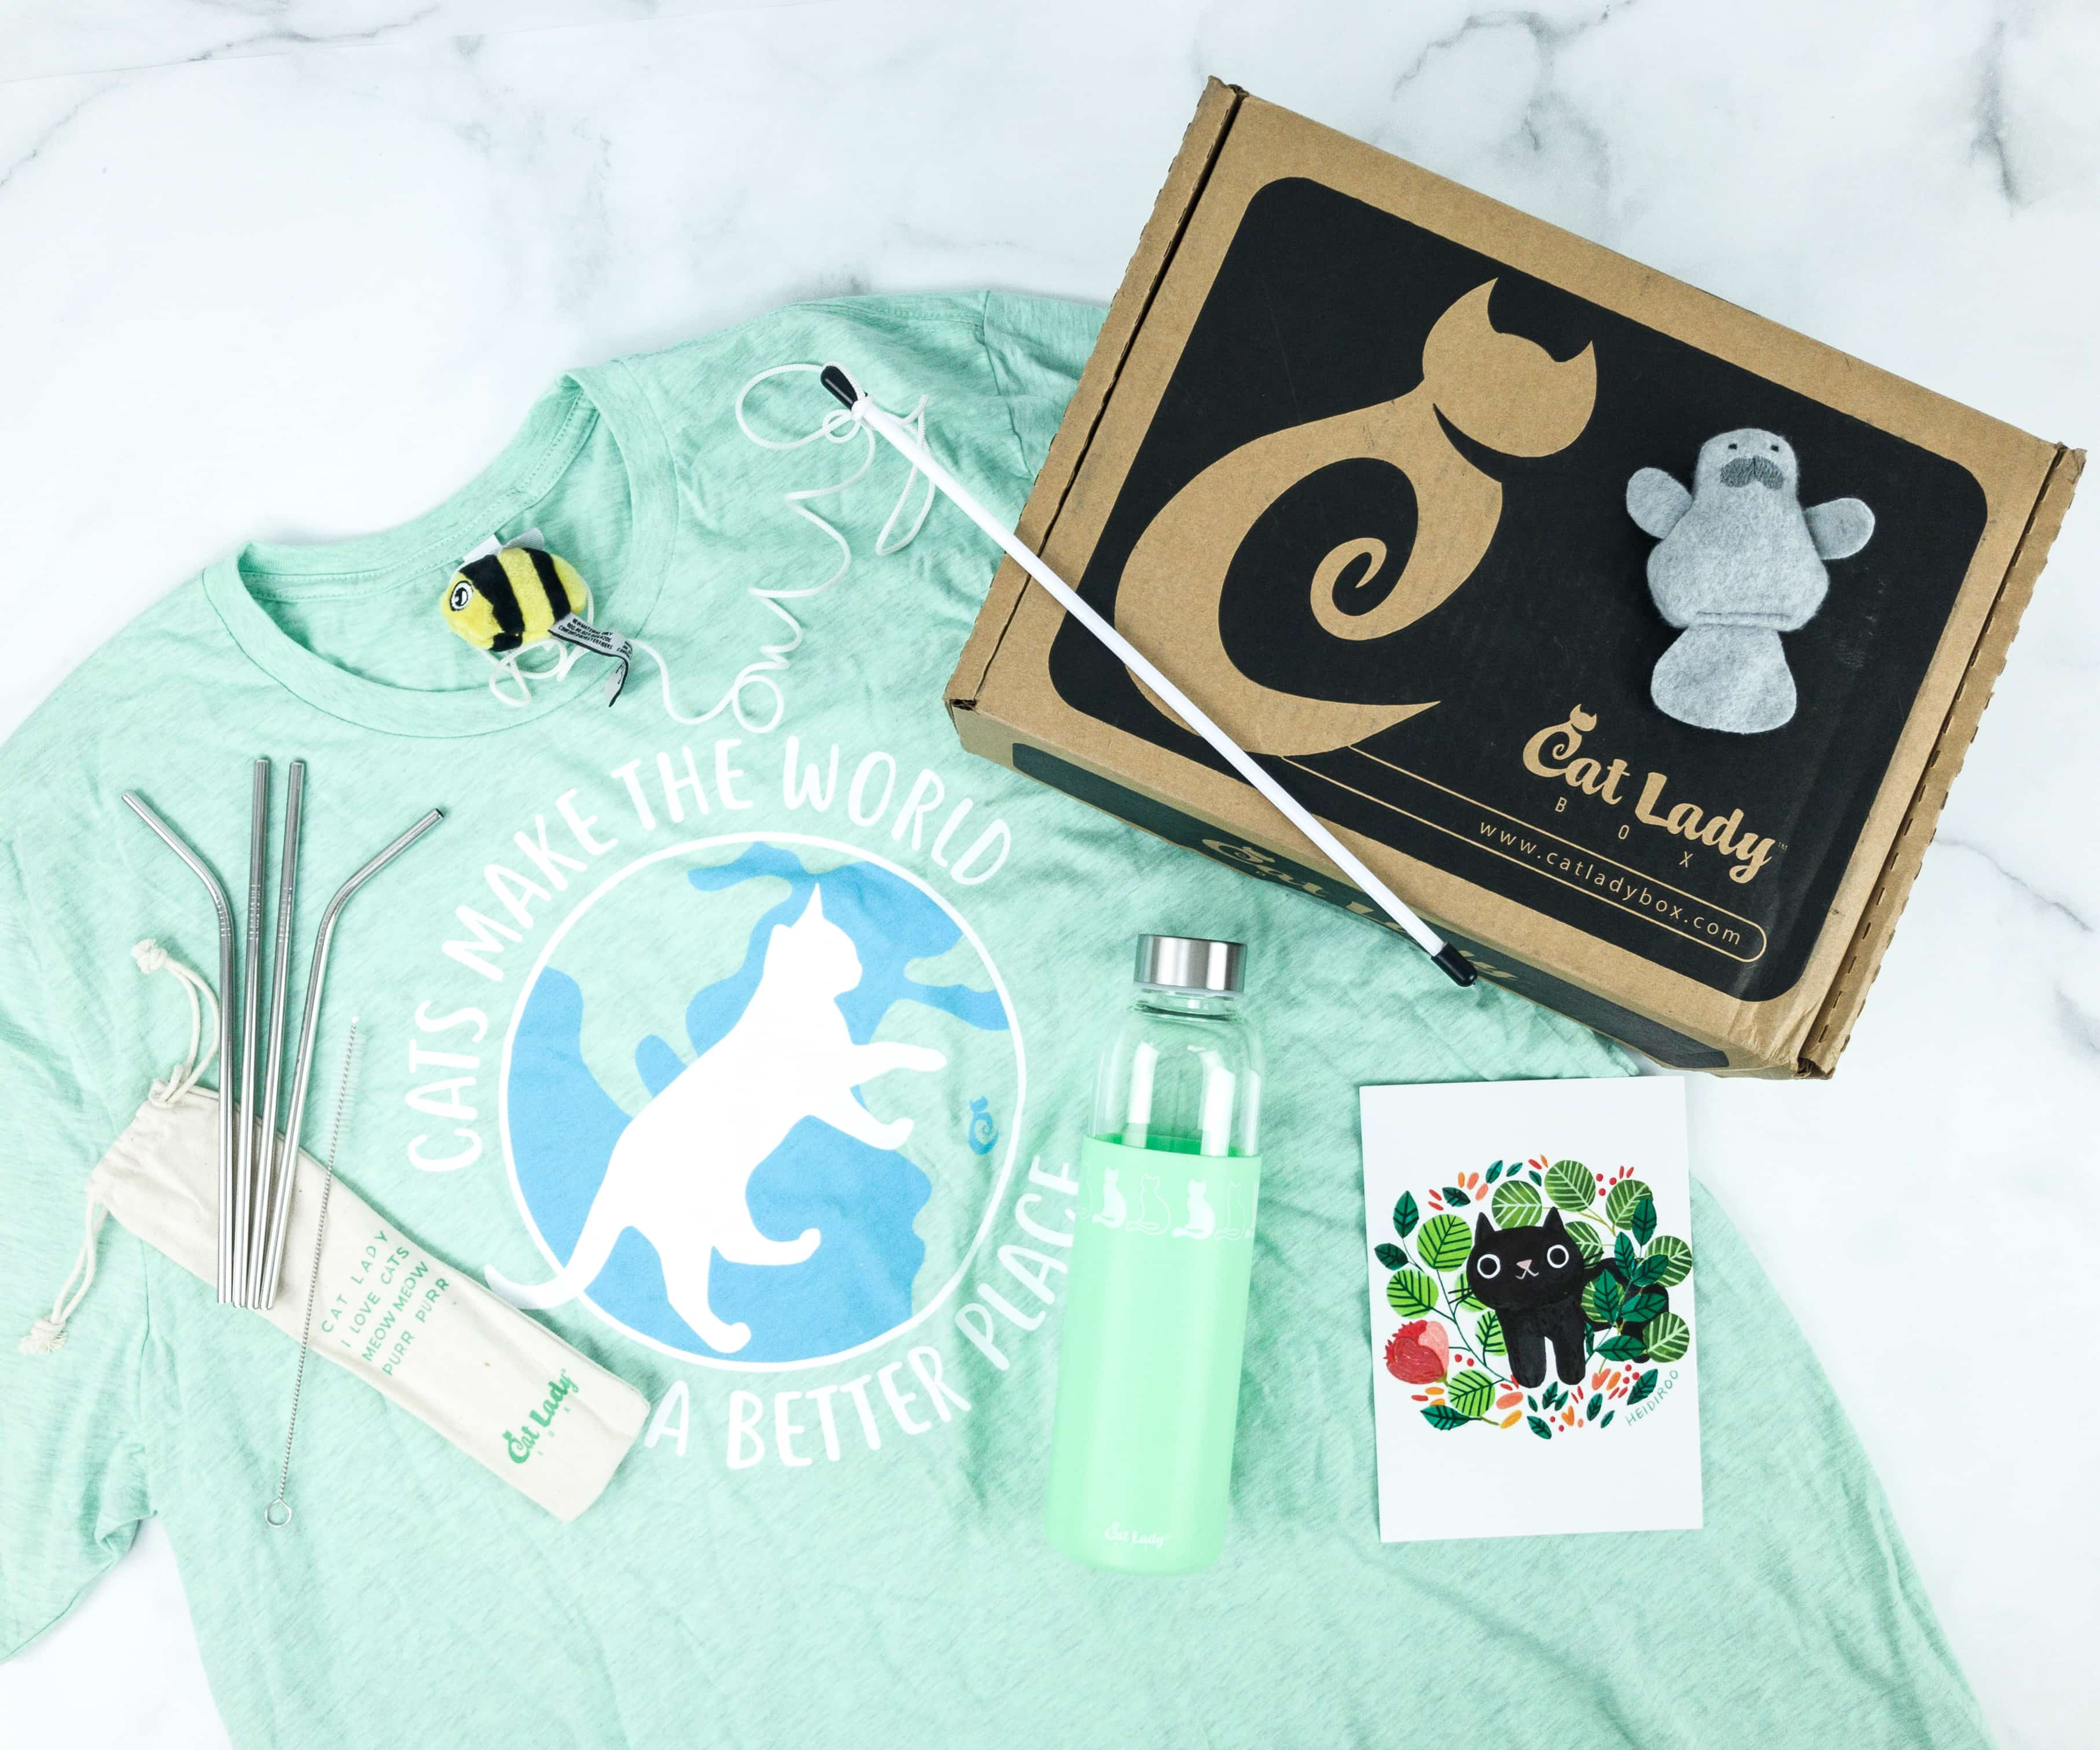 Cat Lady Box August 2019 Subscription Box Review + Coupon